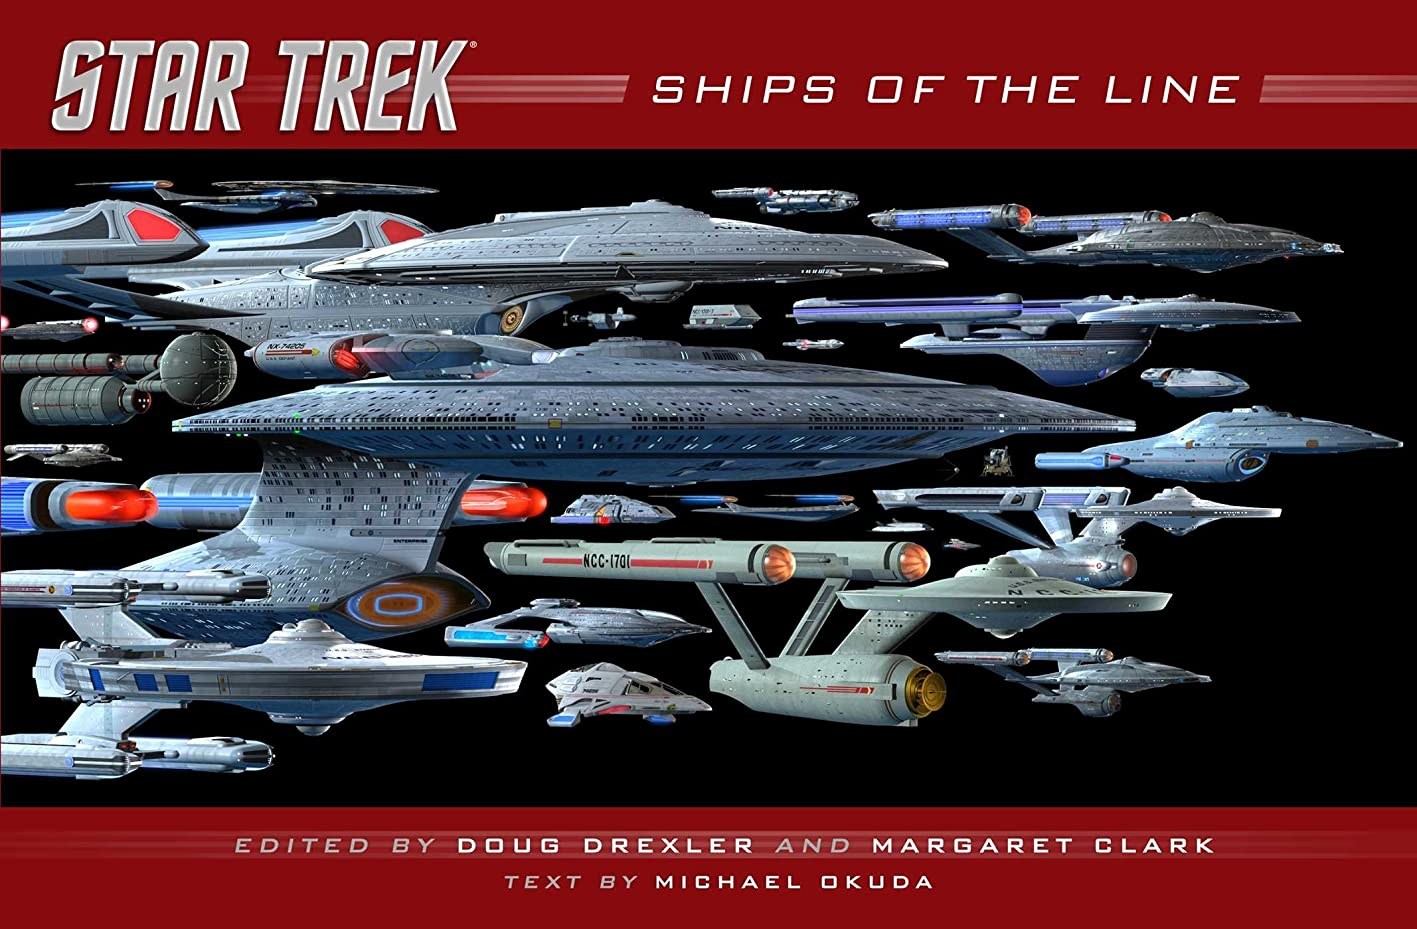 シェルターギャンブルなしでShips of the Line (Star Trek) (English Edition)